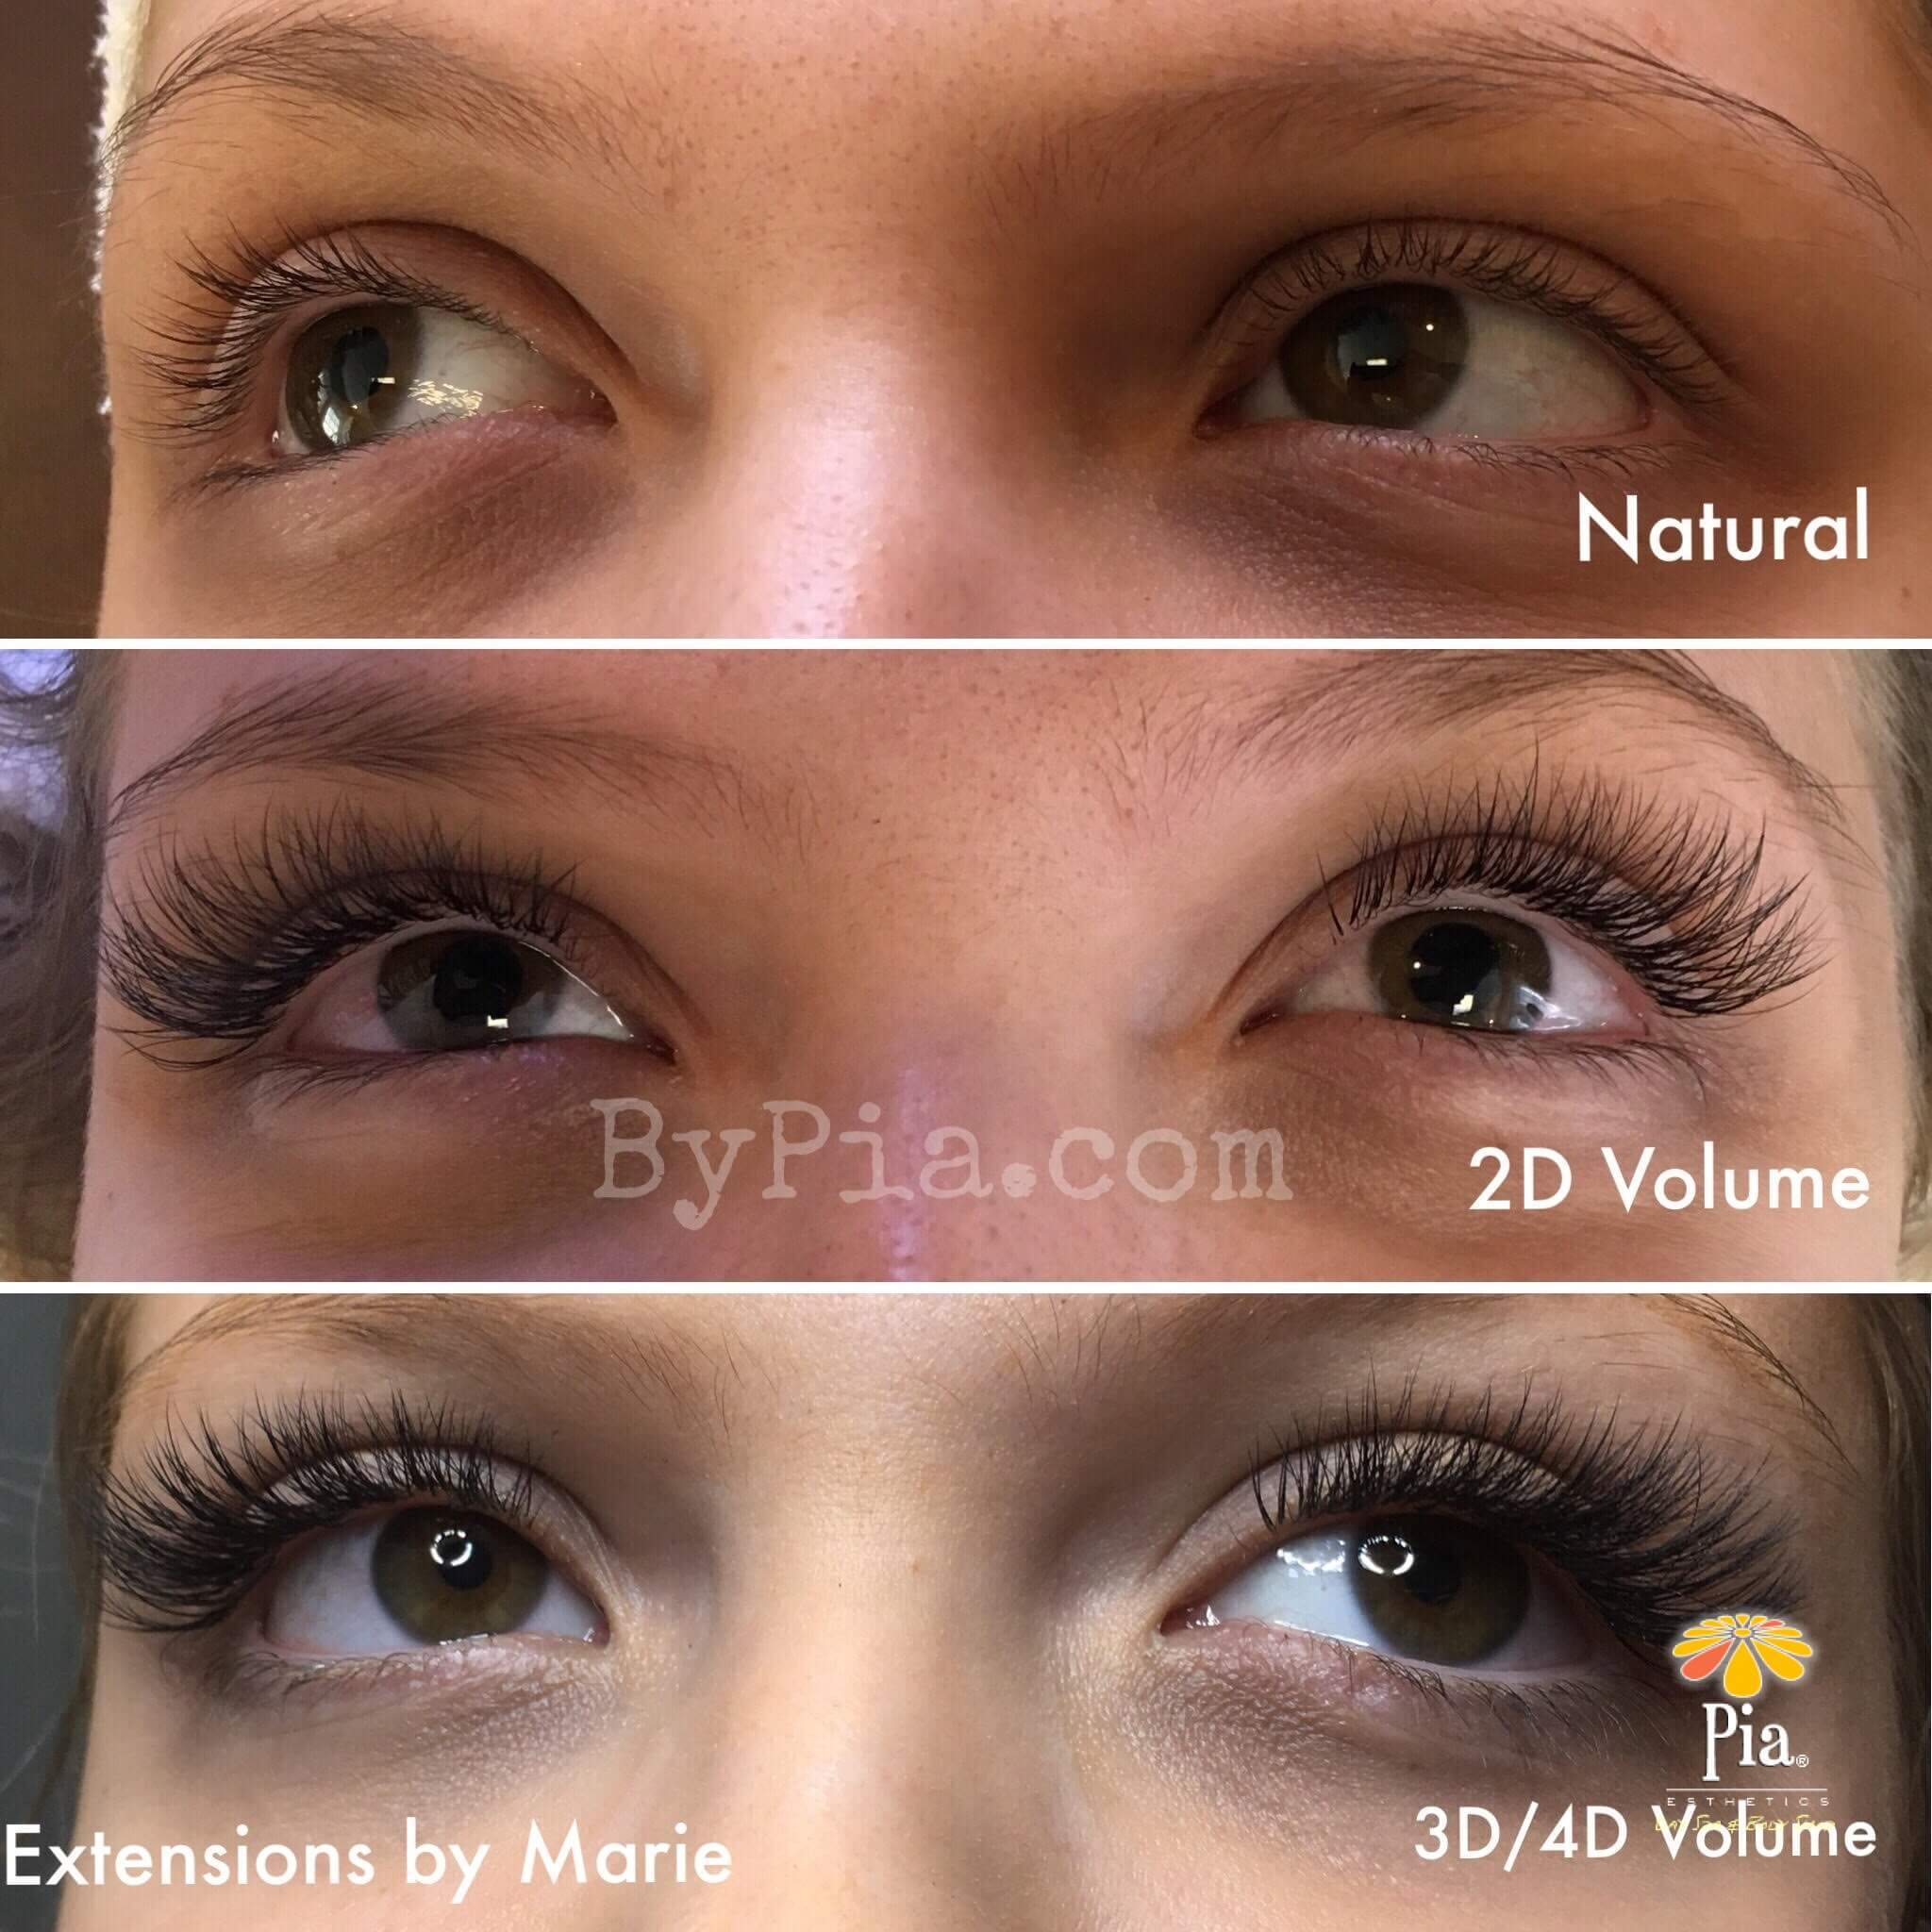 de94ac66747 2D, 3D & 4D Volume Lashes are now available at Pia ...